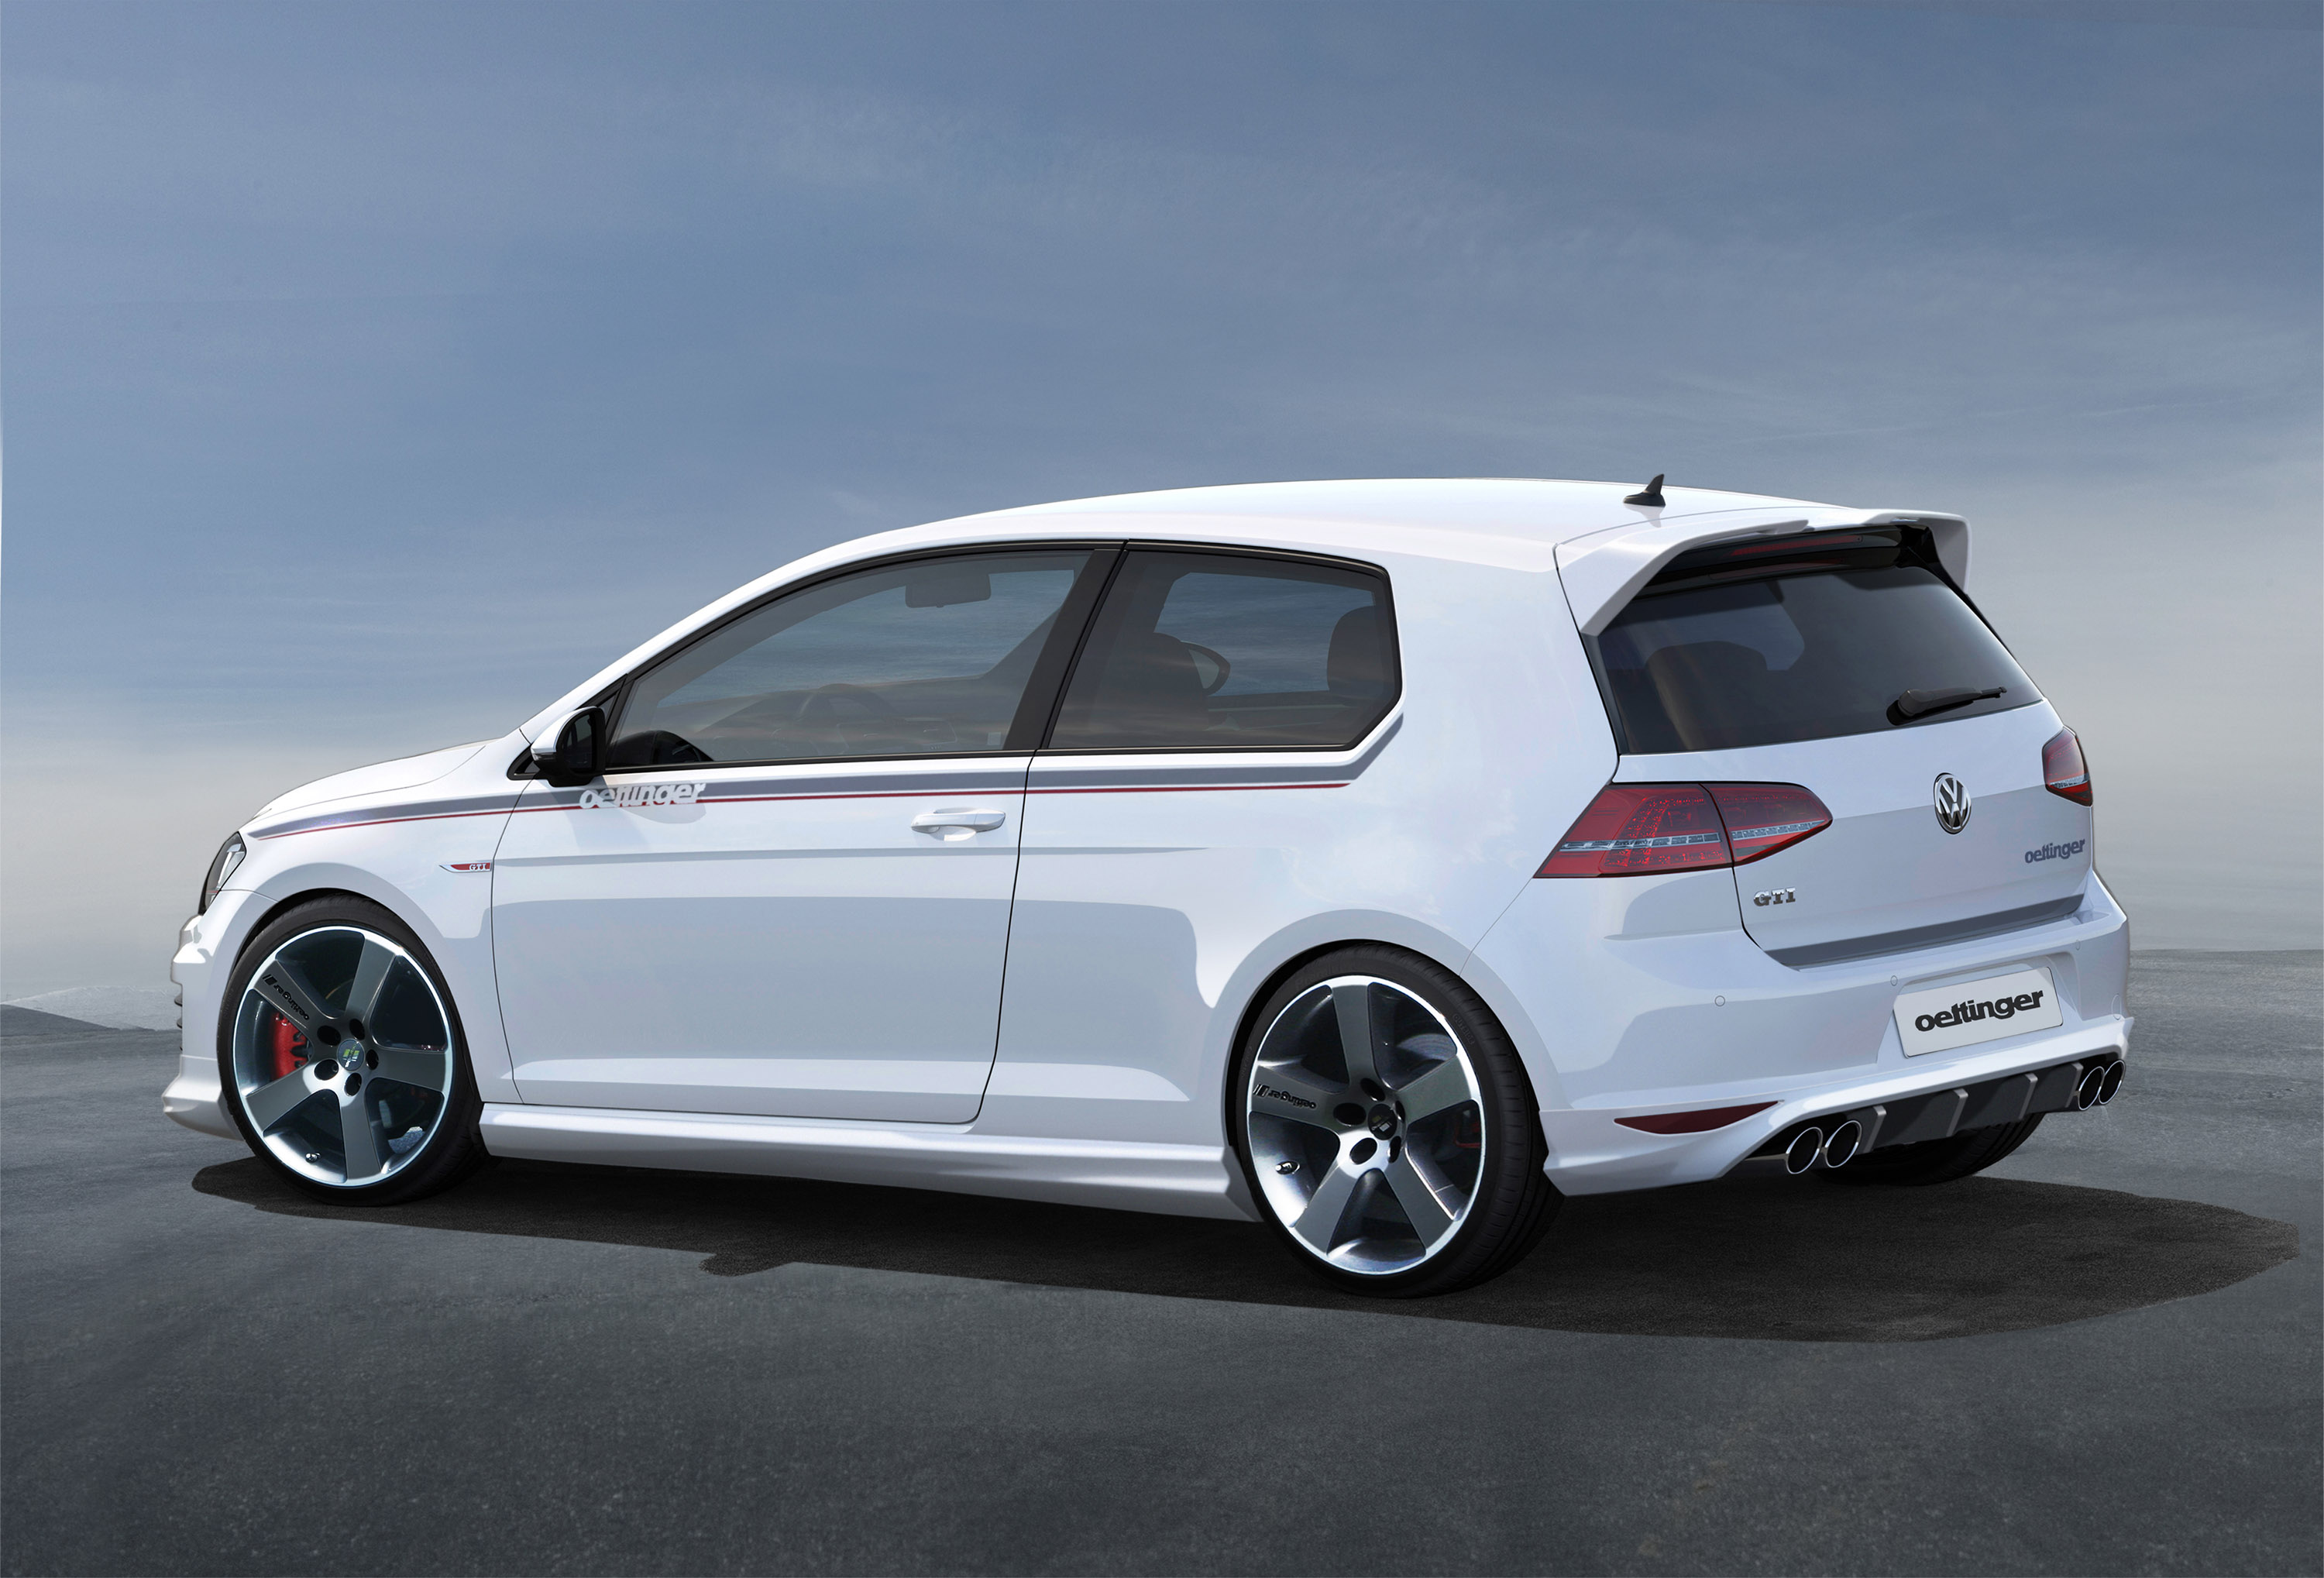 oettinger volkswagen golf vii gti traditionally quick. Black Bedroom Furniture Sets. Home Design Ideas